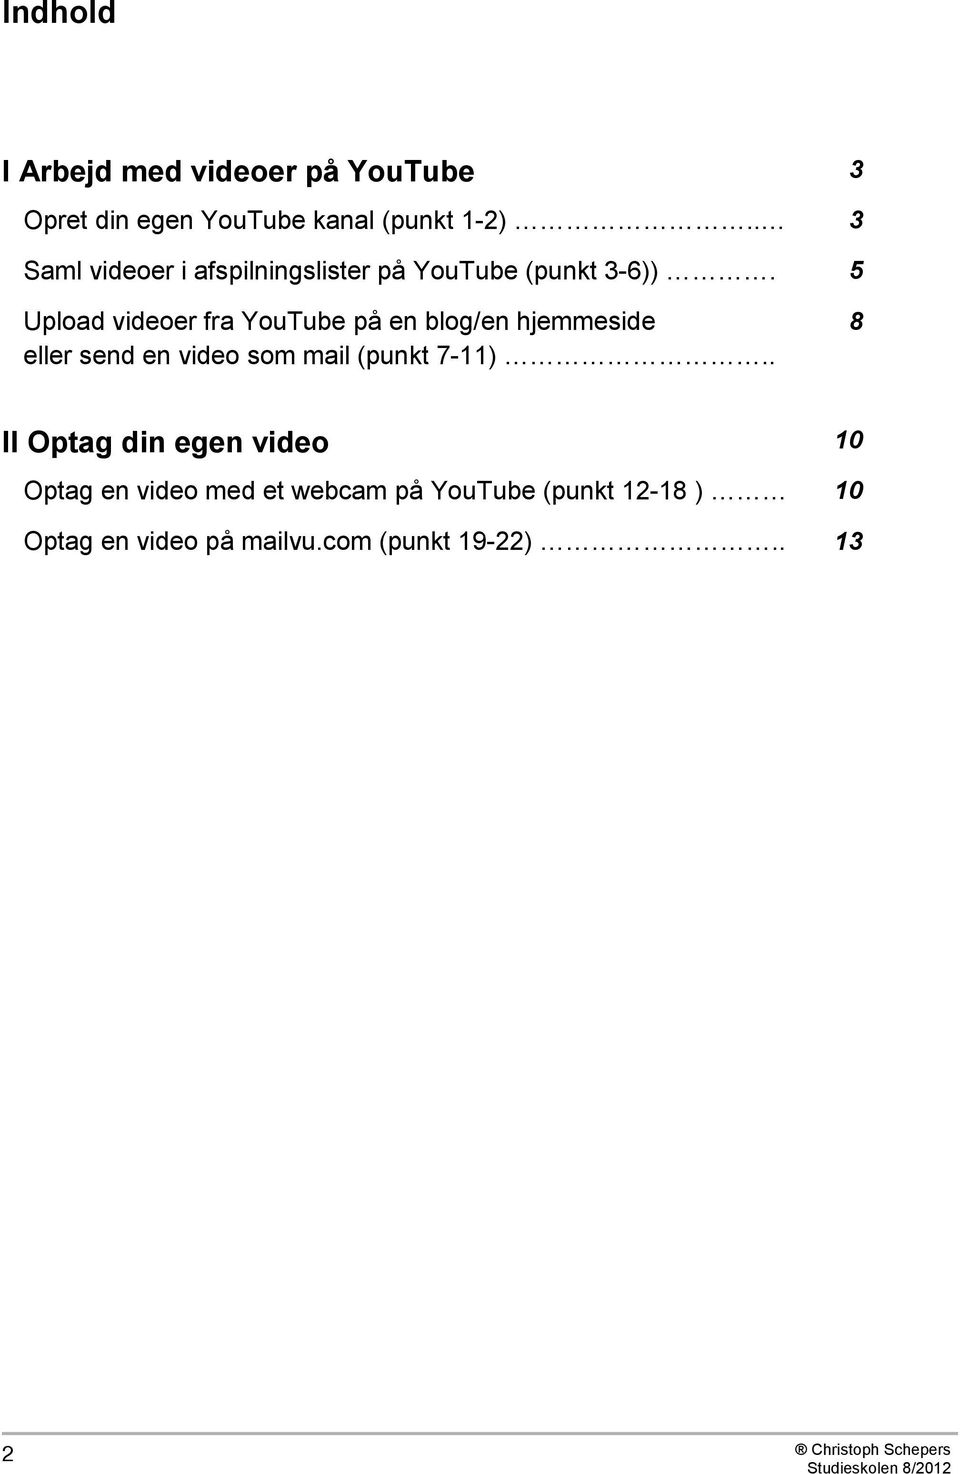 5 Upload videoer fra YouTube på en blog/en hjemmeside eller send en video som mail (punkt 7-11).